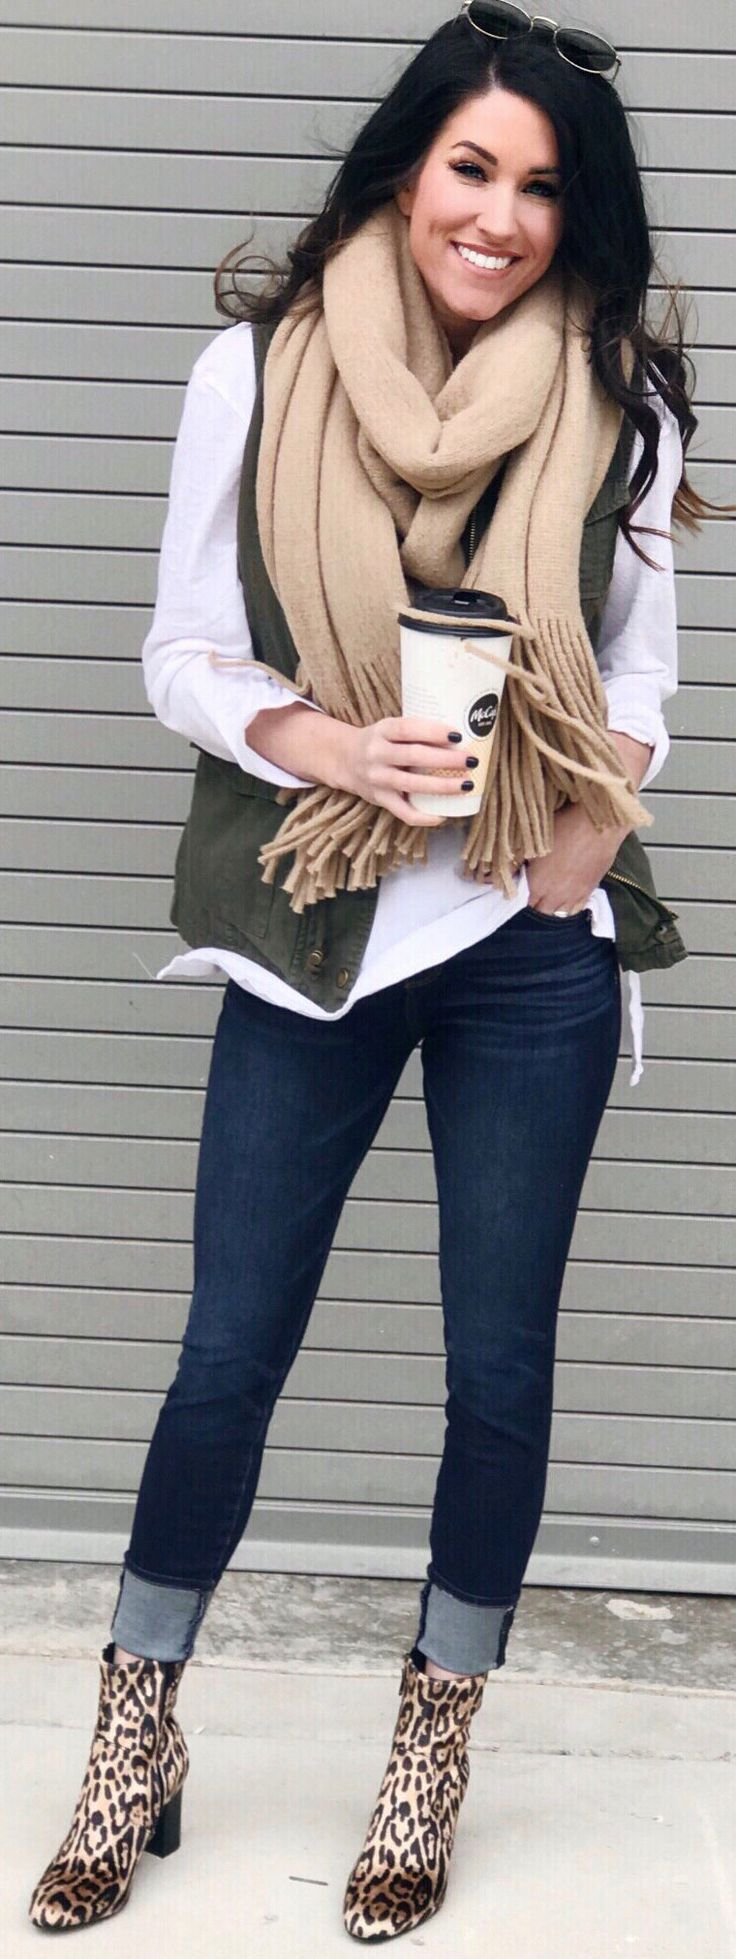 #winter #outfits brown scarf and white quarter-sleeved shirt. Pic by @thesisterstudioig.